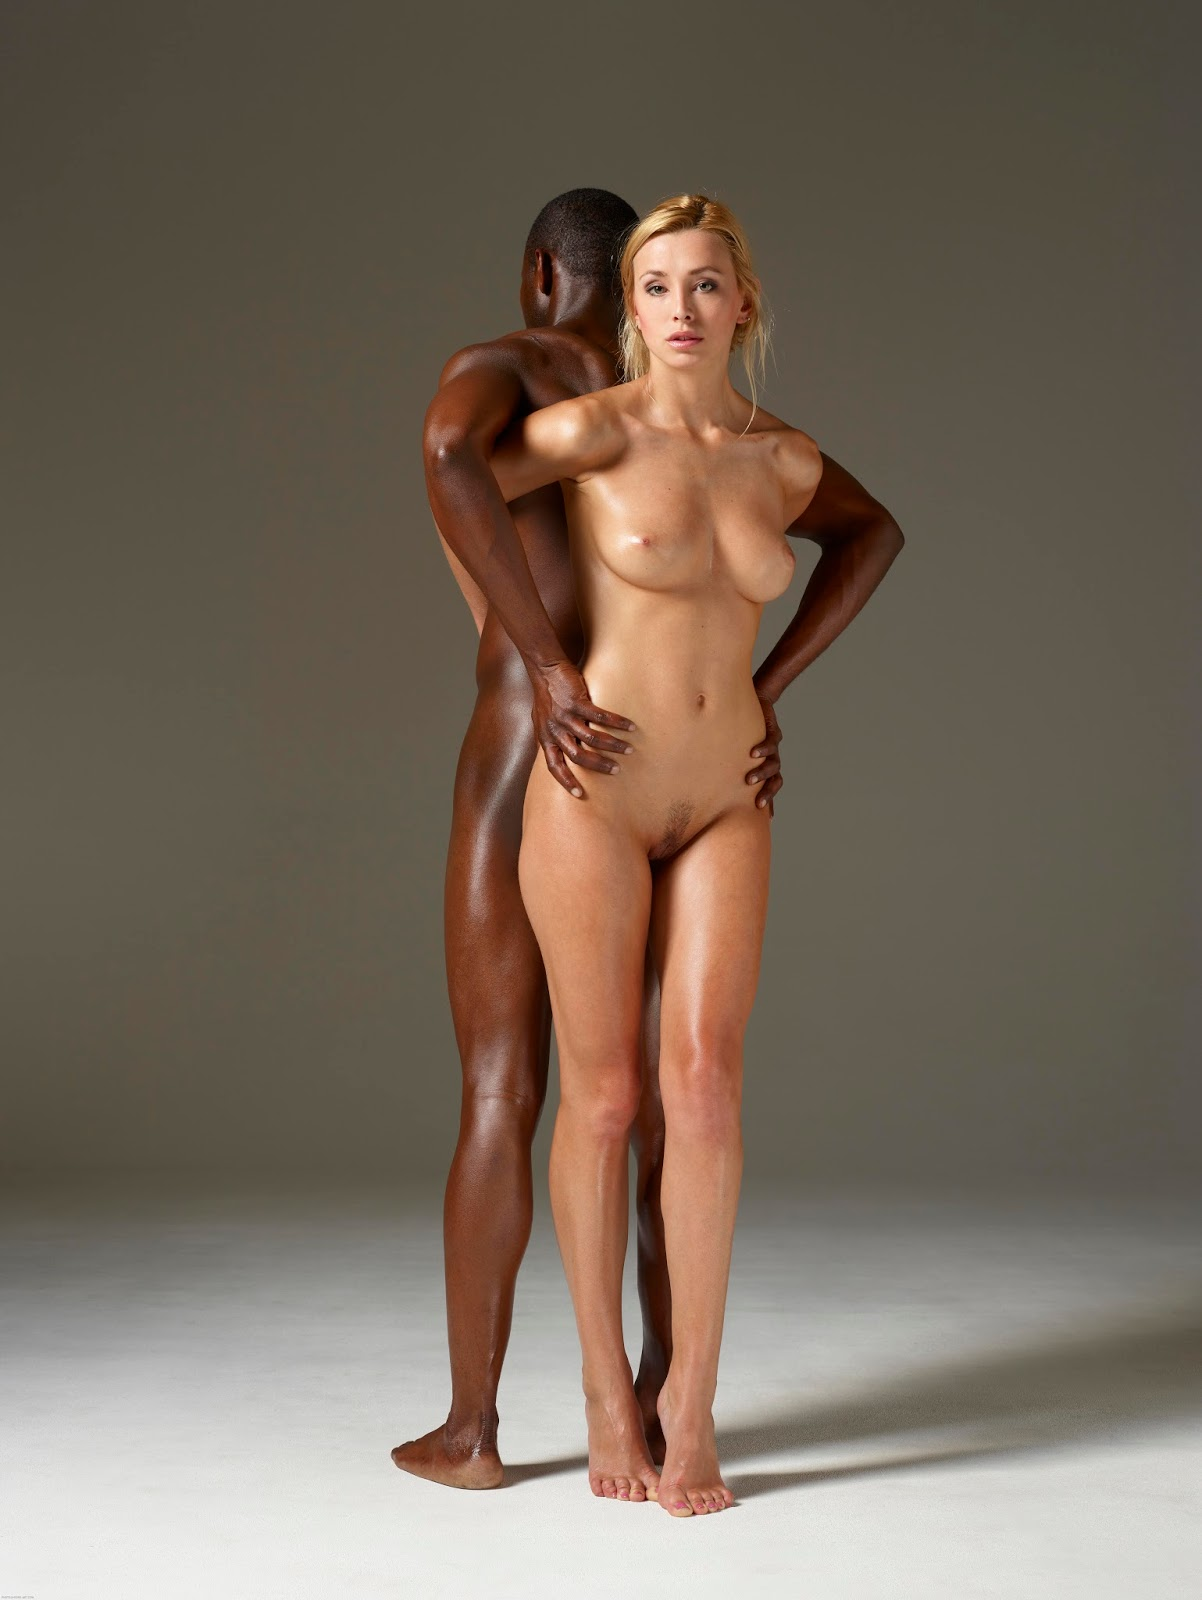 Are Beautiful naked girls having sex with black men